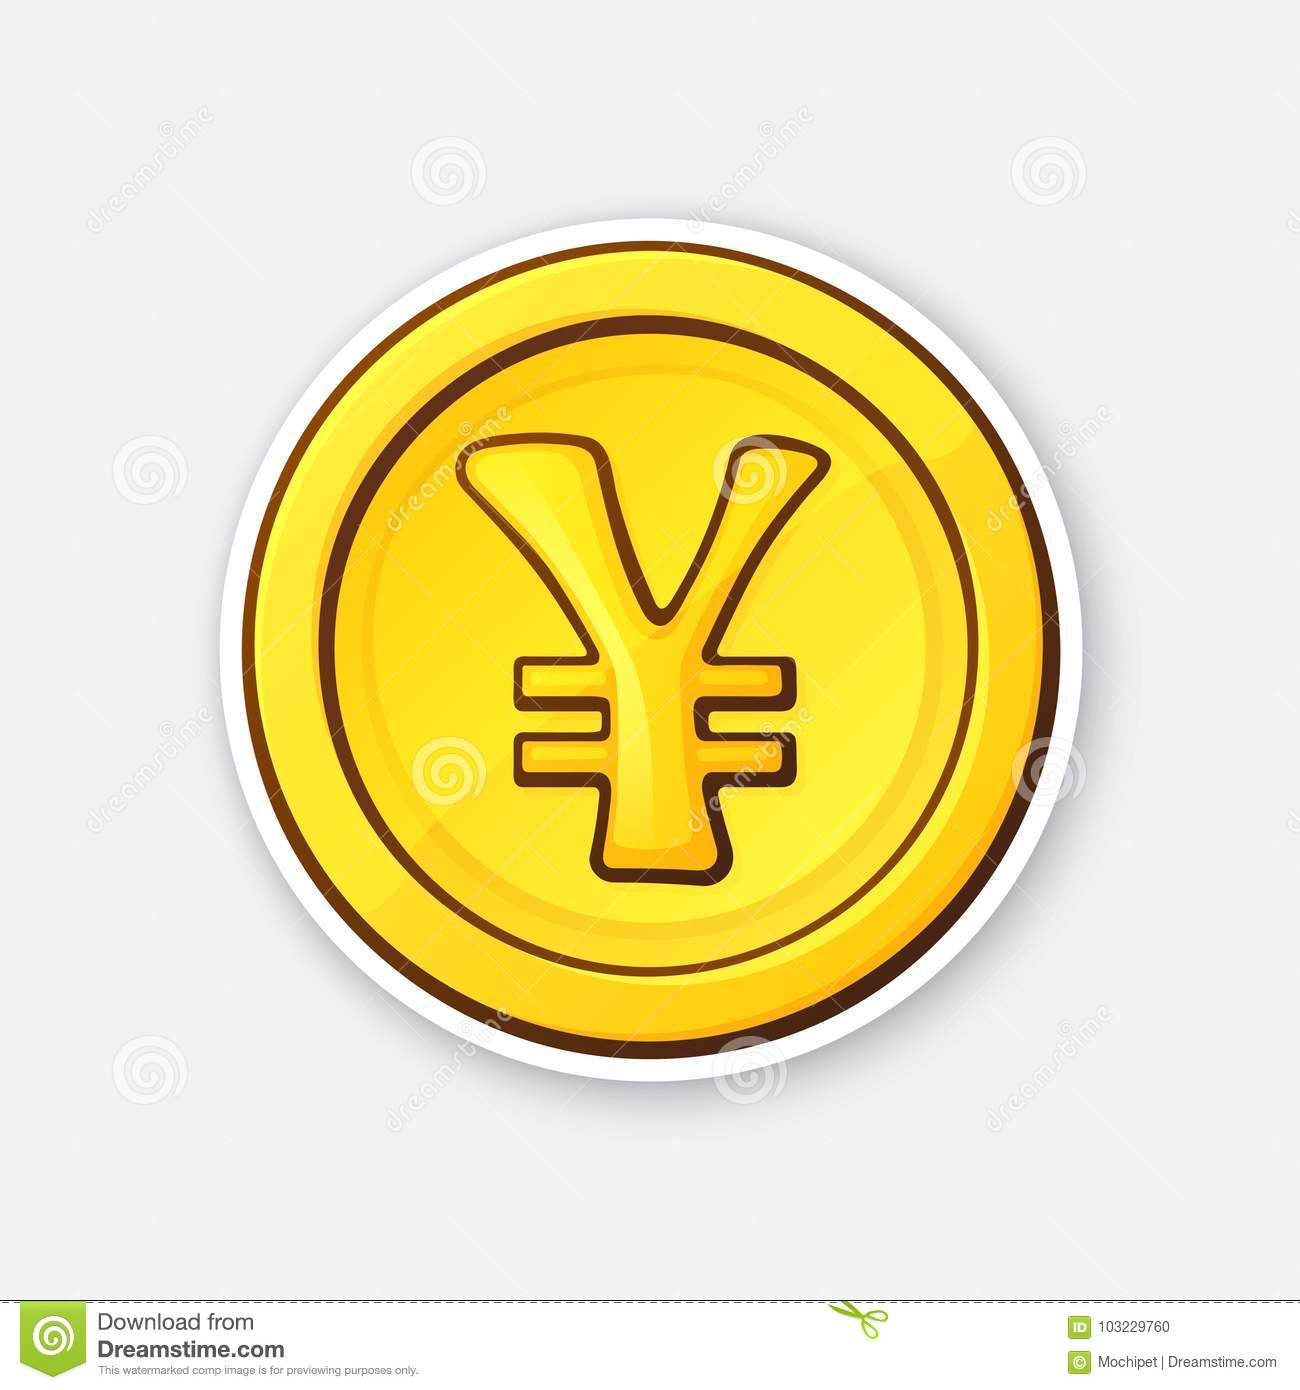 Sticker Of Gold Coin Japanese Yen Or Chinese Yuan Stock Vector